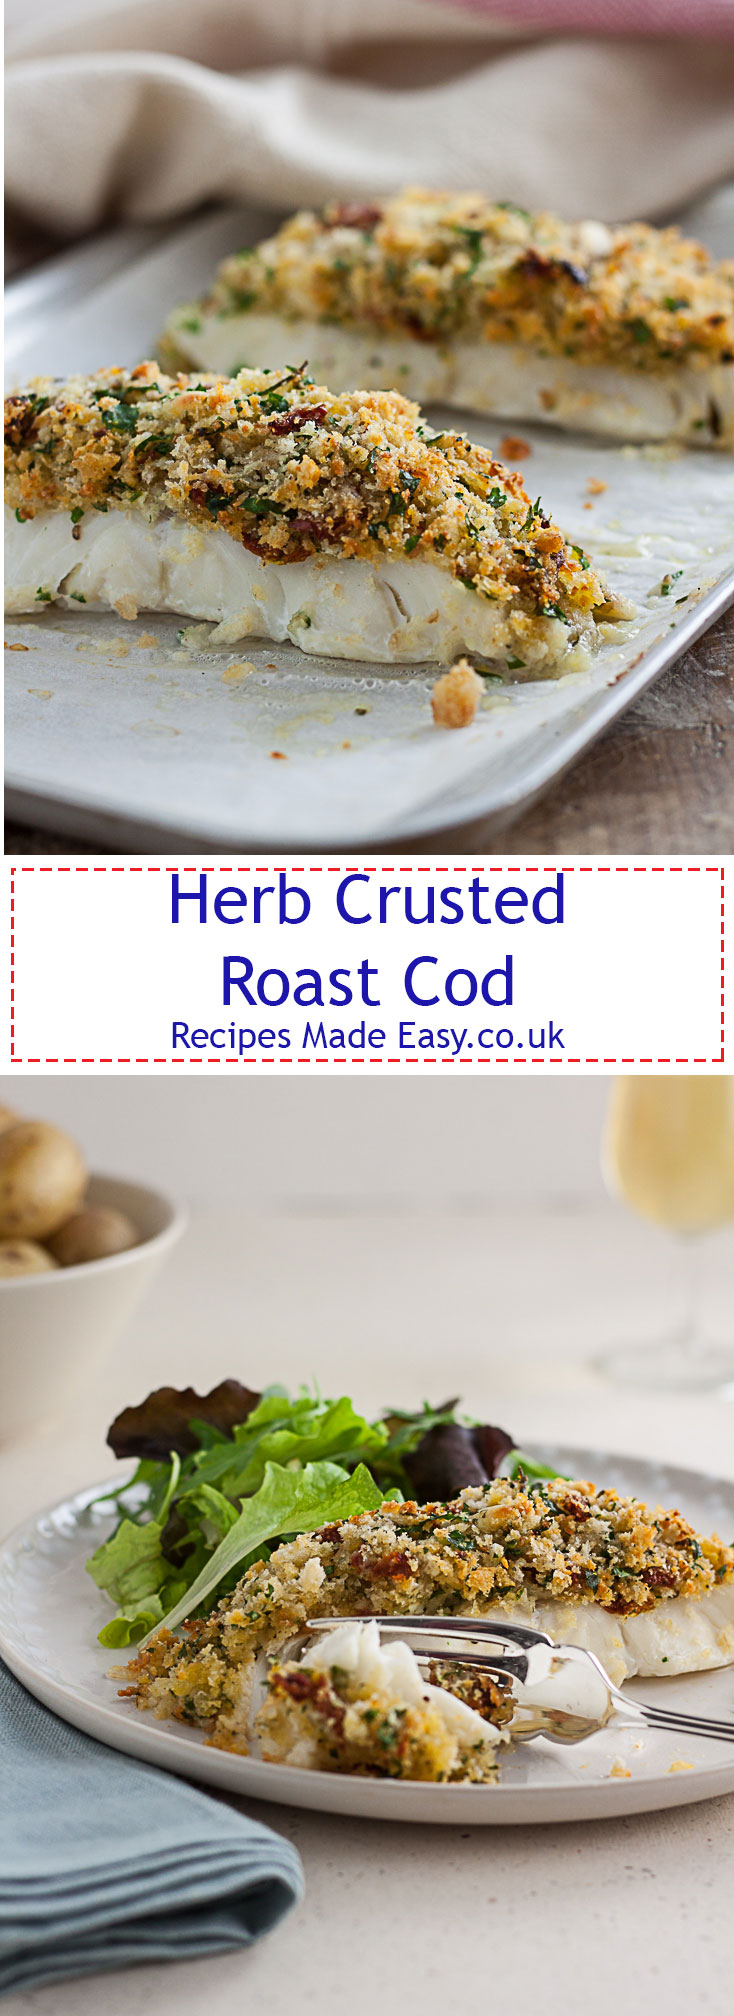 Herb crusted roast cod - Recipes Made Easy